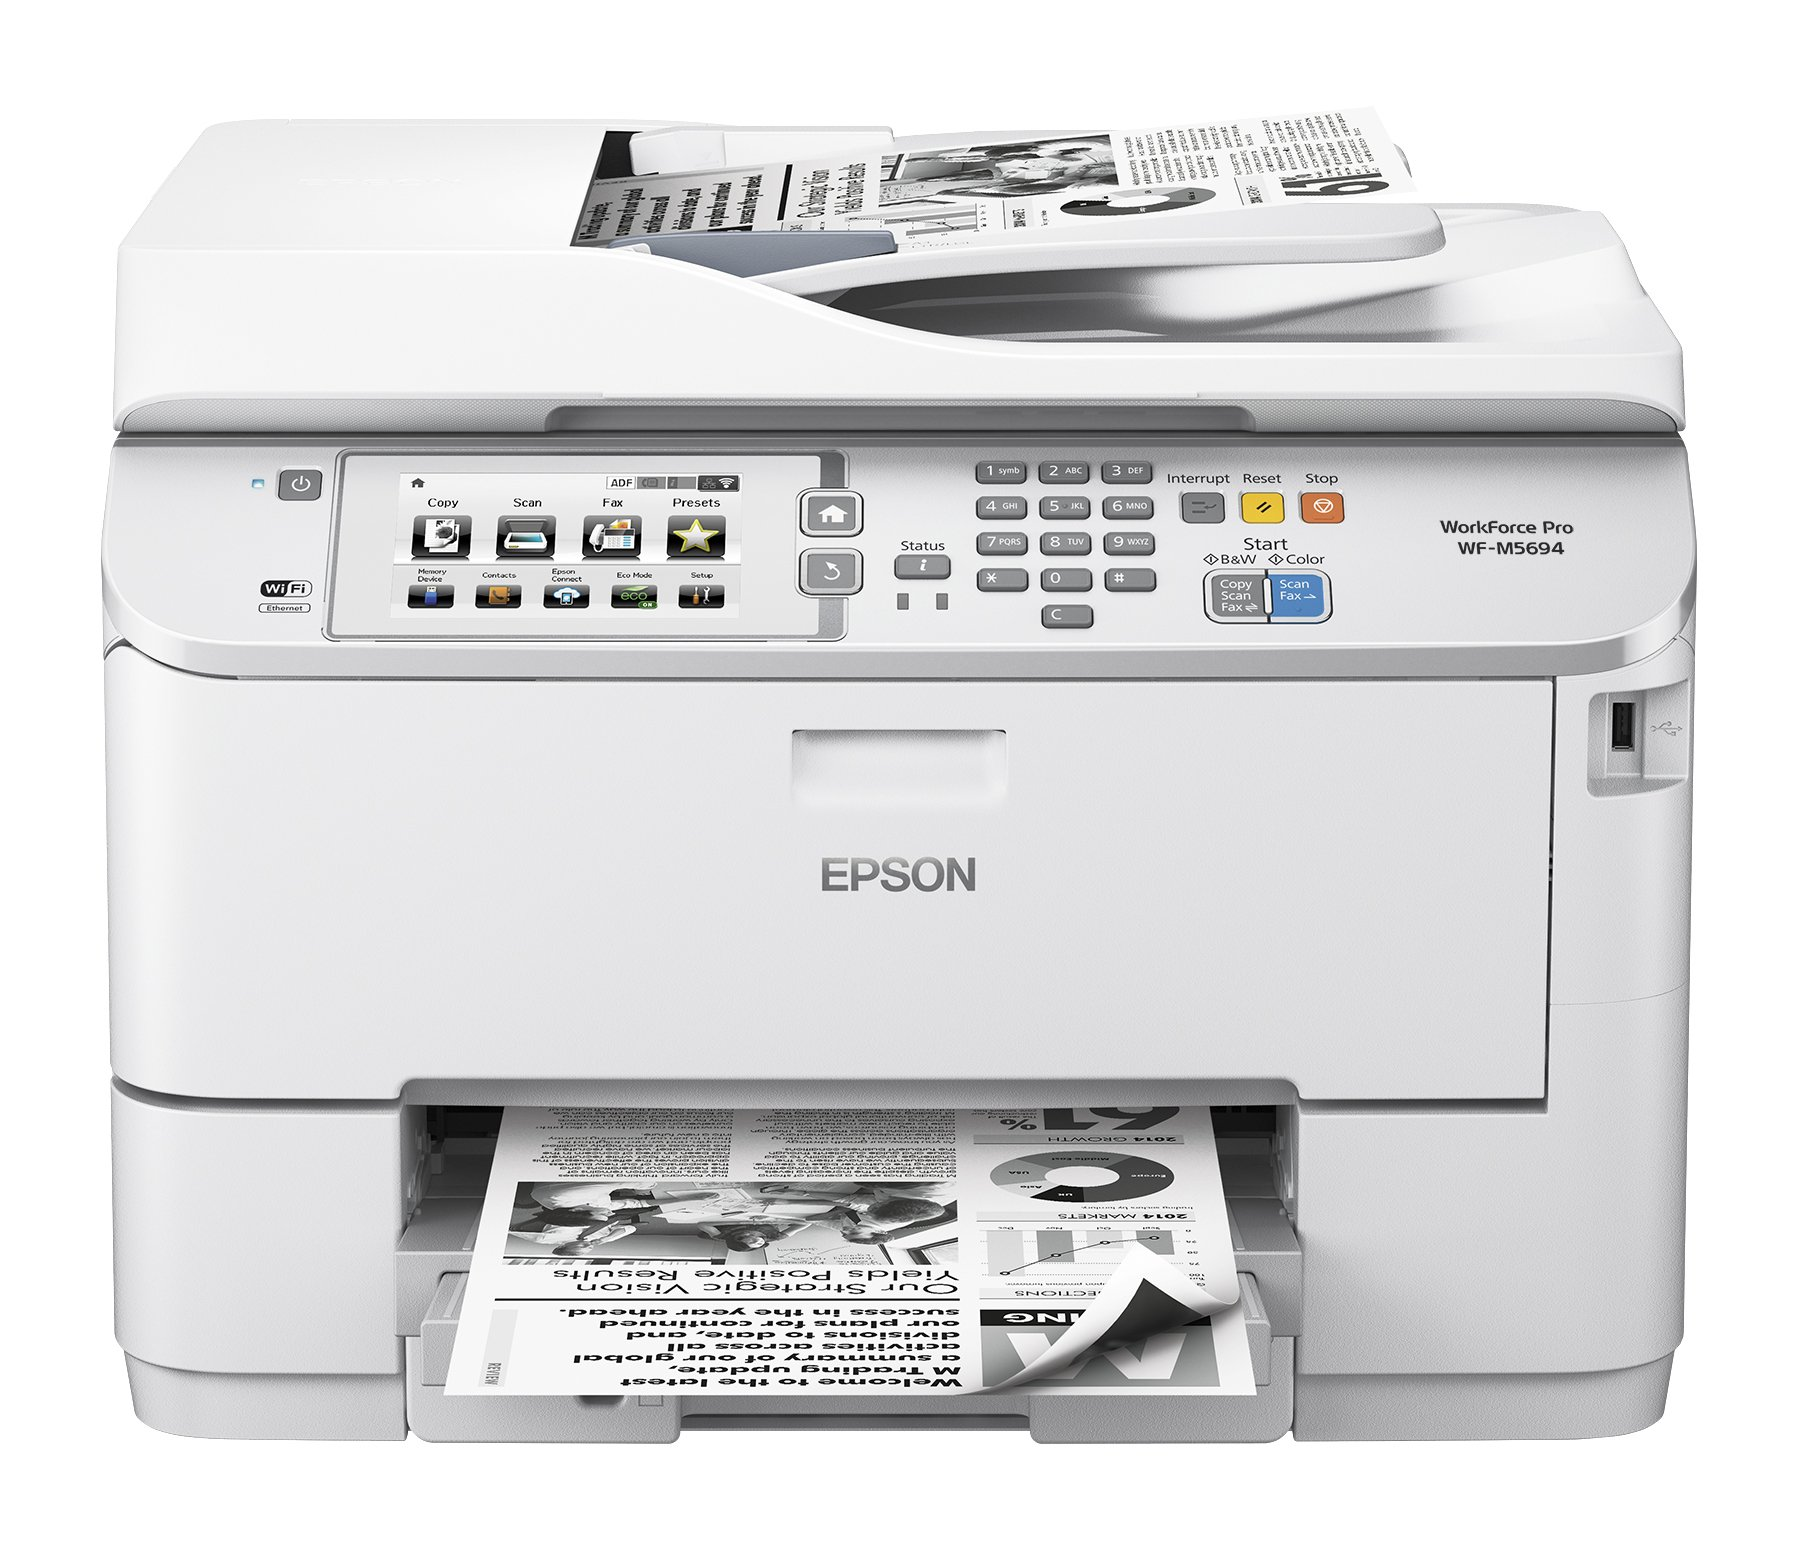 Epson WorkForce Pro M5694 Review: Fast, Quality Printing